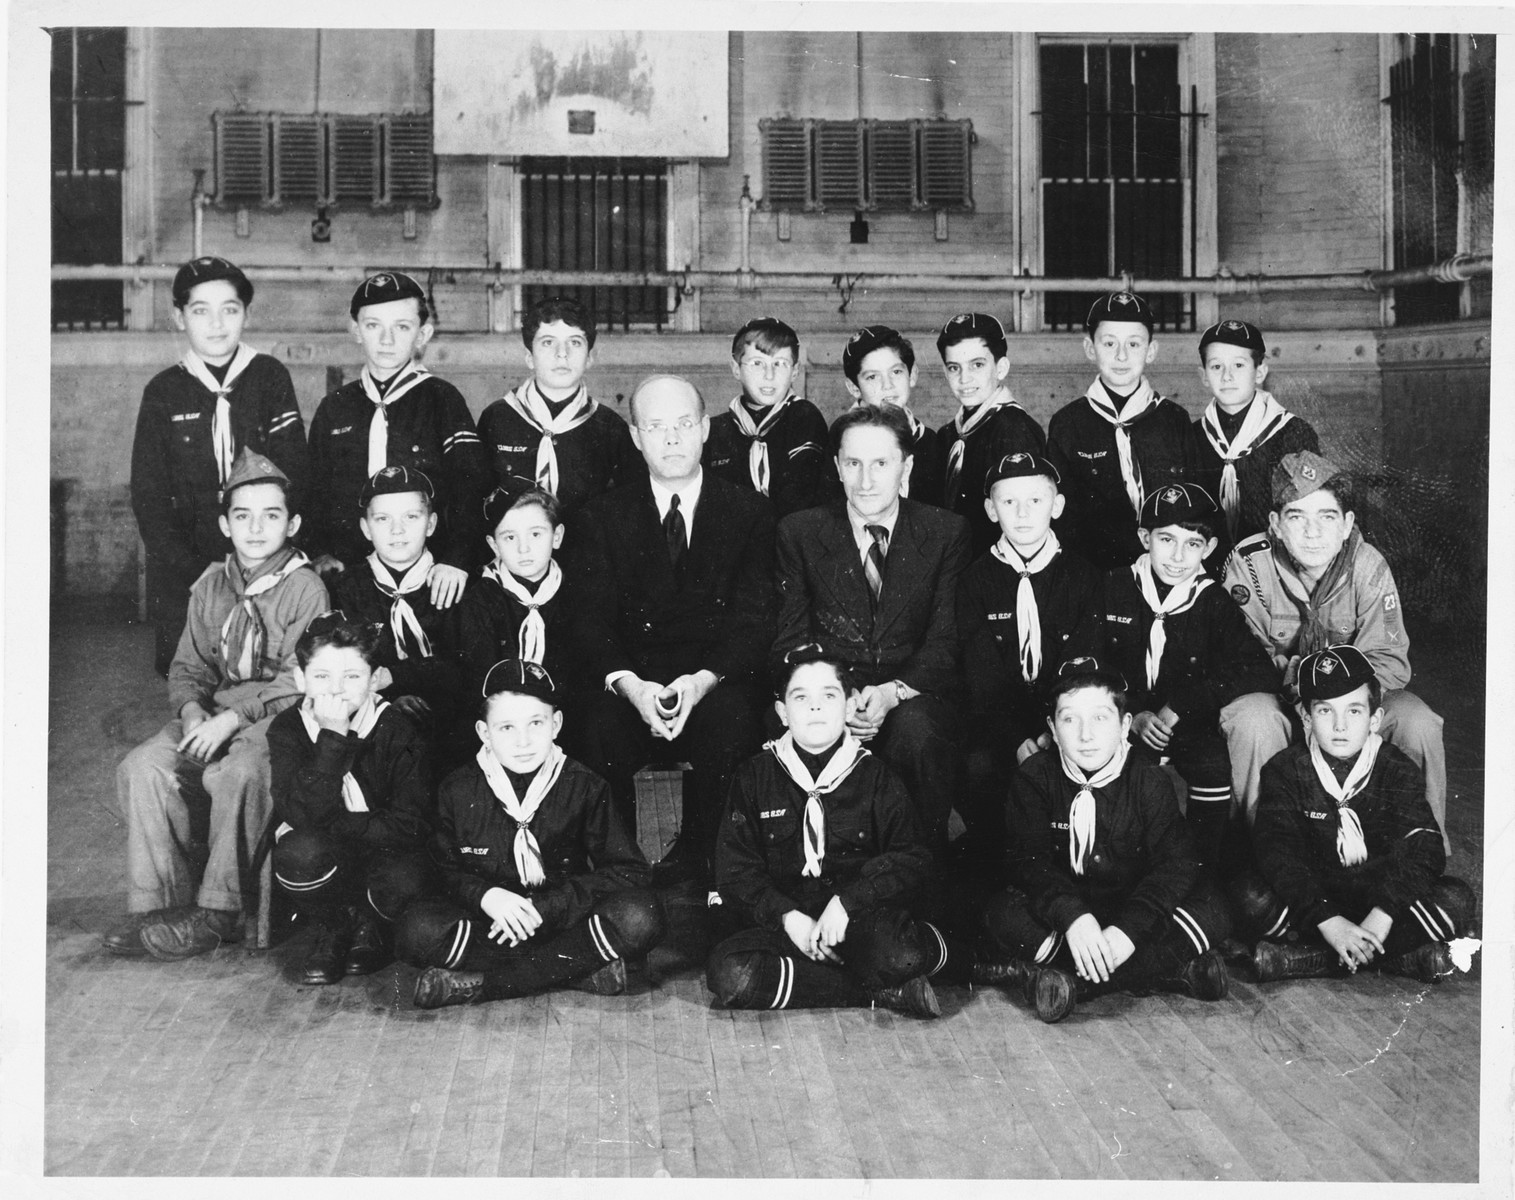 Children and leaders of a Fort Ontario cub scout troop.  Pictured in the front row (left to right) are Jakov Kampos, Wilhelm Wittenberg, Milan Polijokan, Silvestro Wachsmann, and Miko Finzi.    Pictured in the second row are Walter Grunberg, Nikola Marinkovic, Miroslav Lang, Mr. Lawrence, Ferdinand Kaska, Heinz Grun, Josef Hazan, and Erik Levy    Pictured in the third row are Branko Hochwald, Michael Hirt; Julius Krauthamer; possibly Jakov Levi, Walter Cohen, Pietri Albrecht, and two unidentified boys.